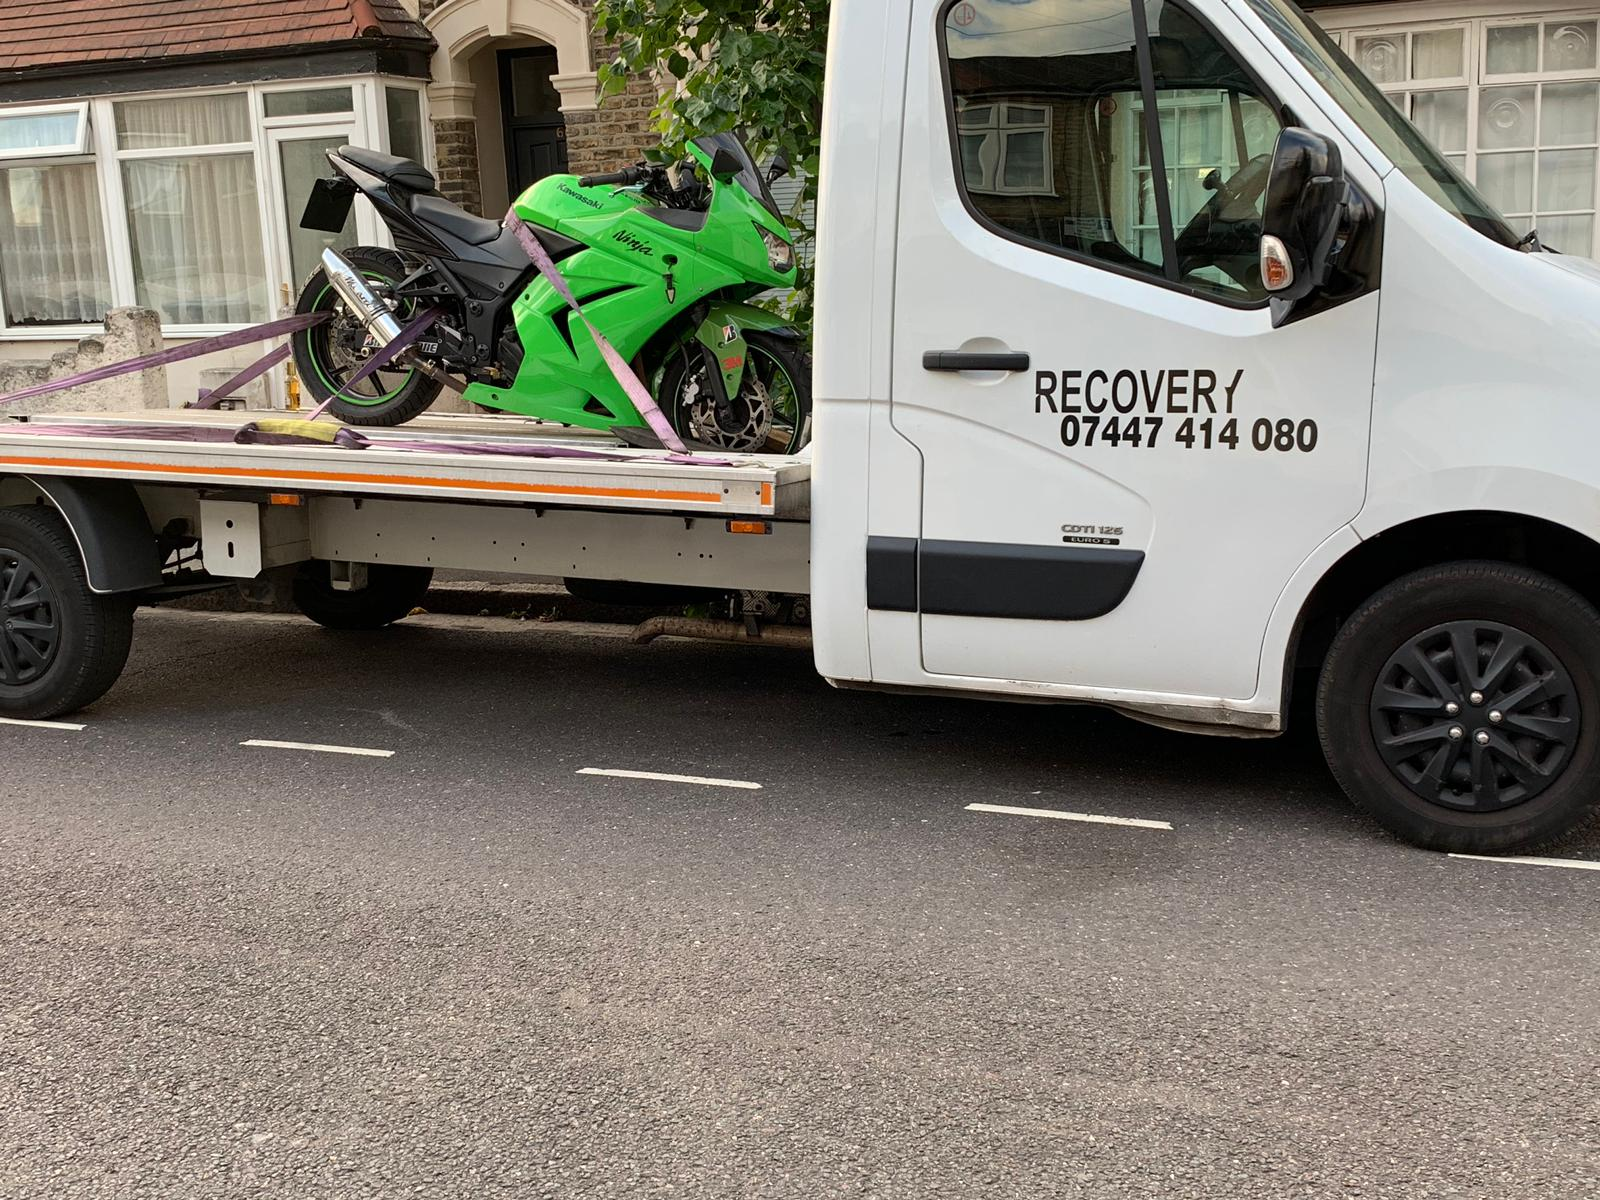 Tow truck recovering a broken down motorcycle in London